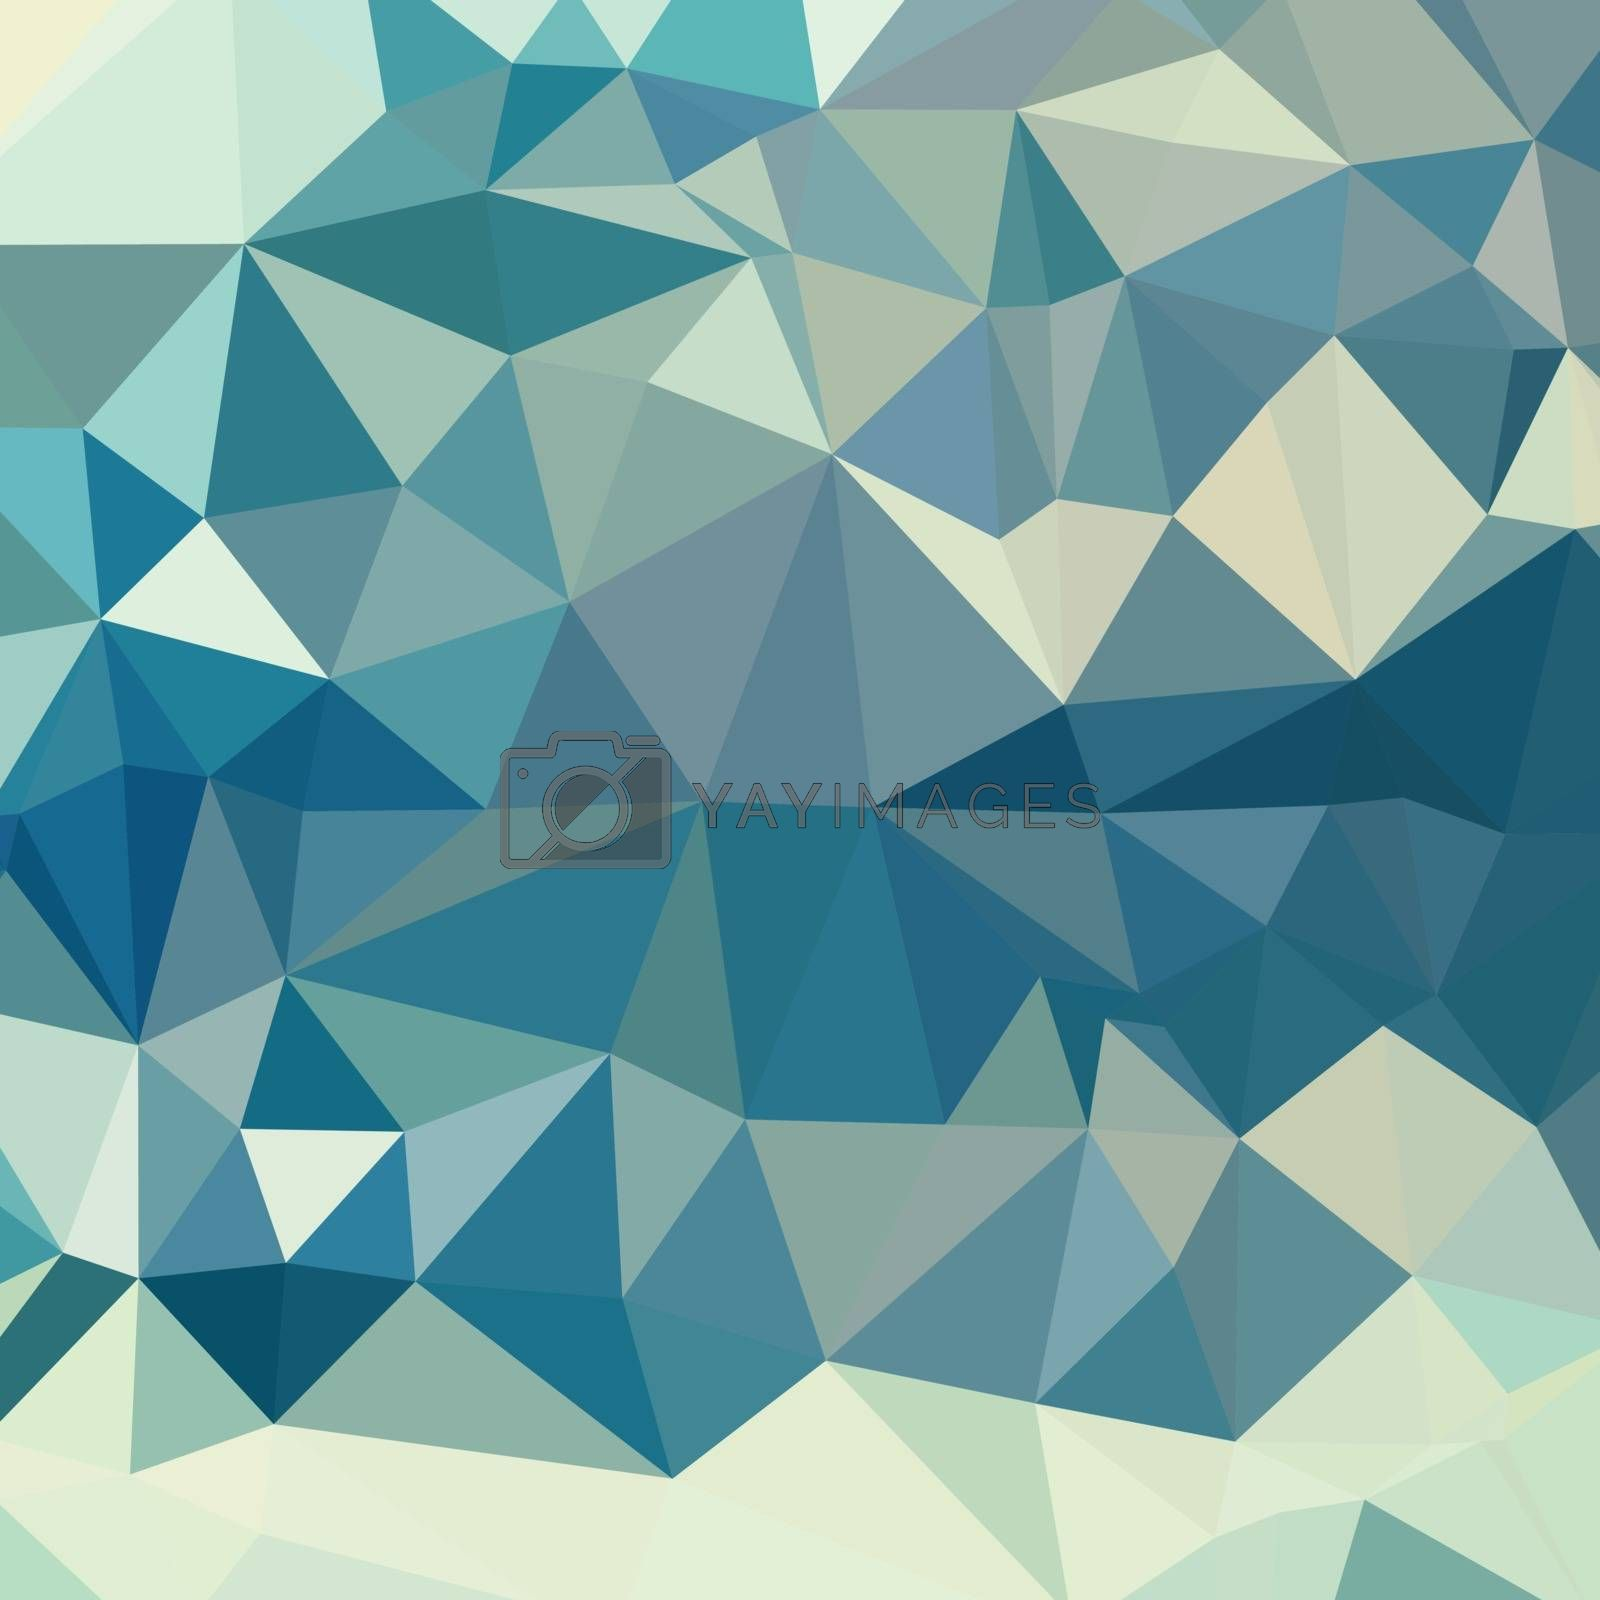 Low polygon style illustration of a skobeloff green abstract geometric background.